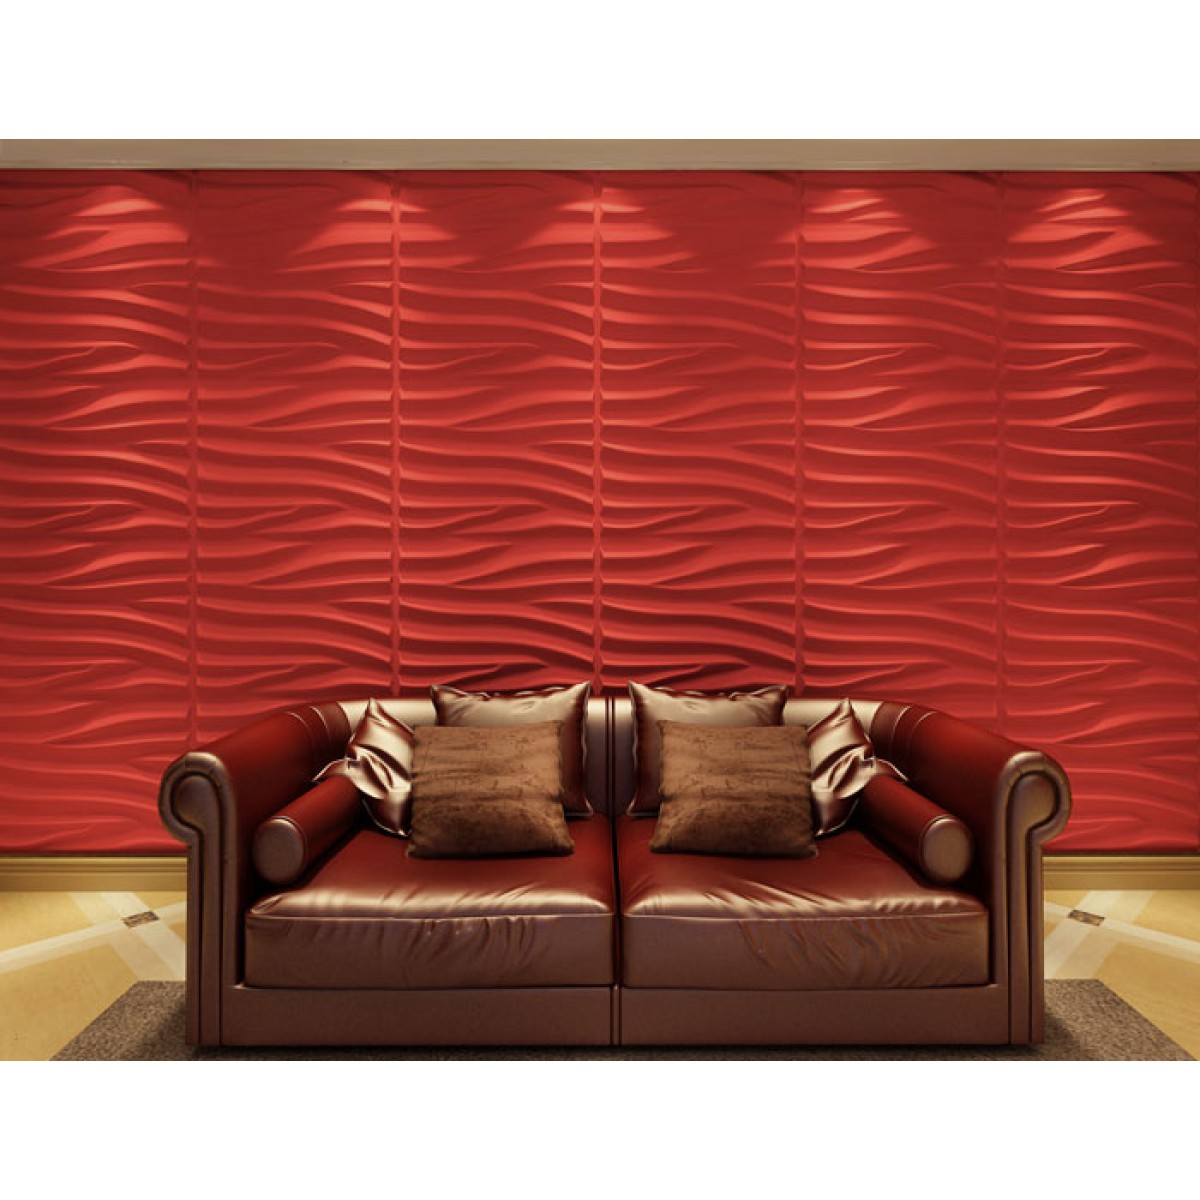 sand design 3d glue on wall panel. Black Bedroom Furniture Sets. Home Design Ideas